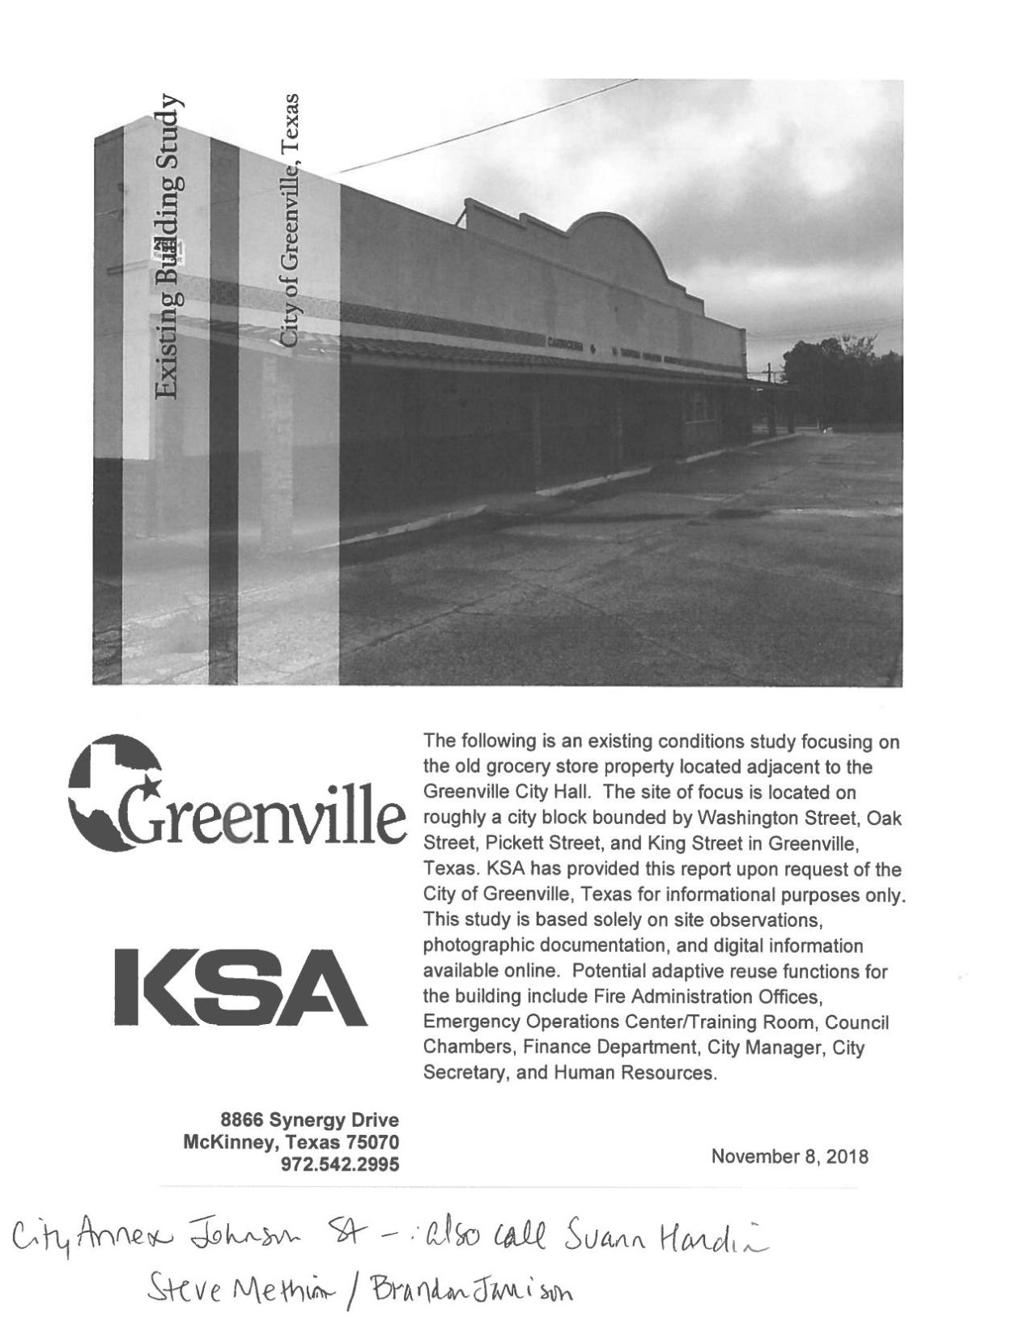 Greenville council considering $3 5M+ project to buy old